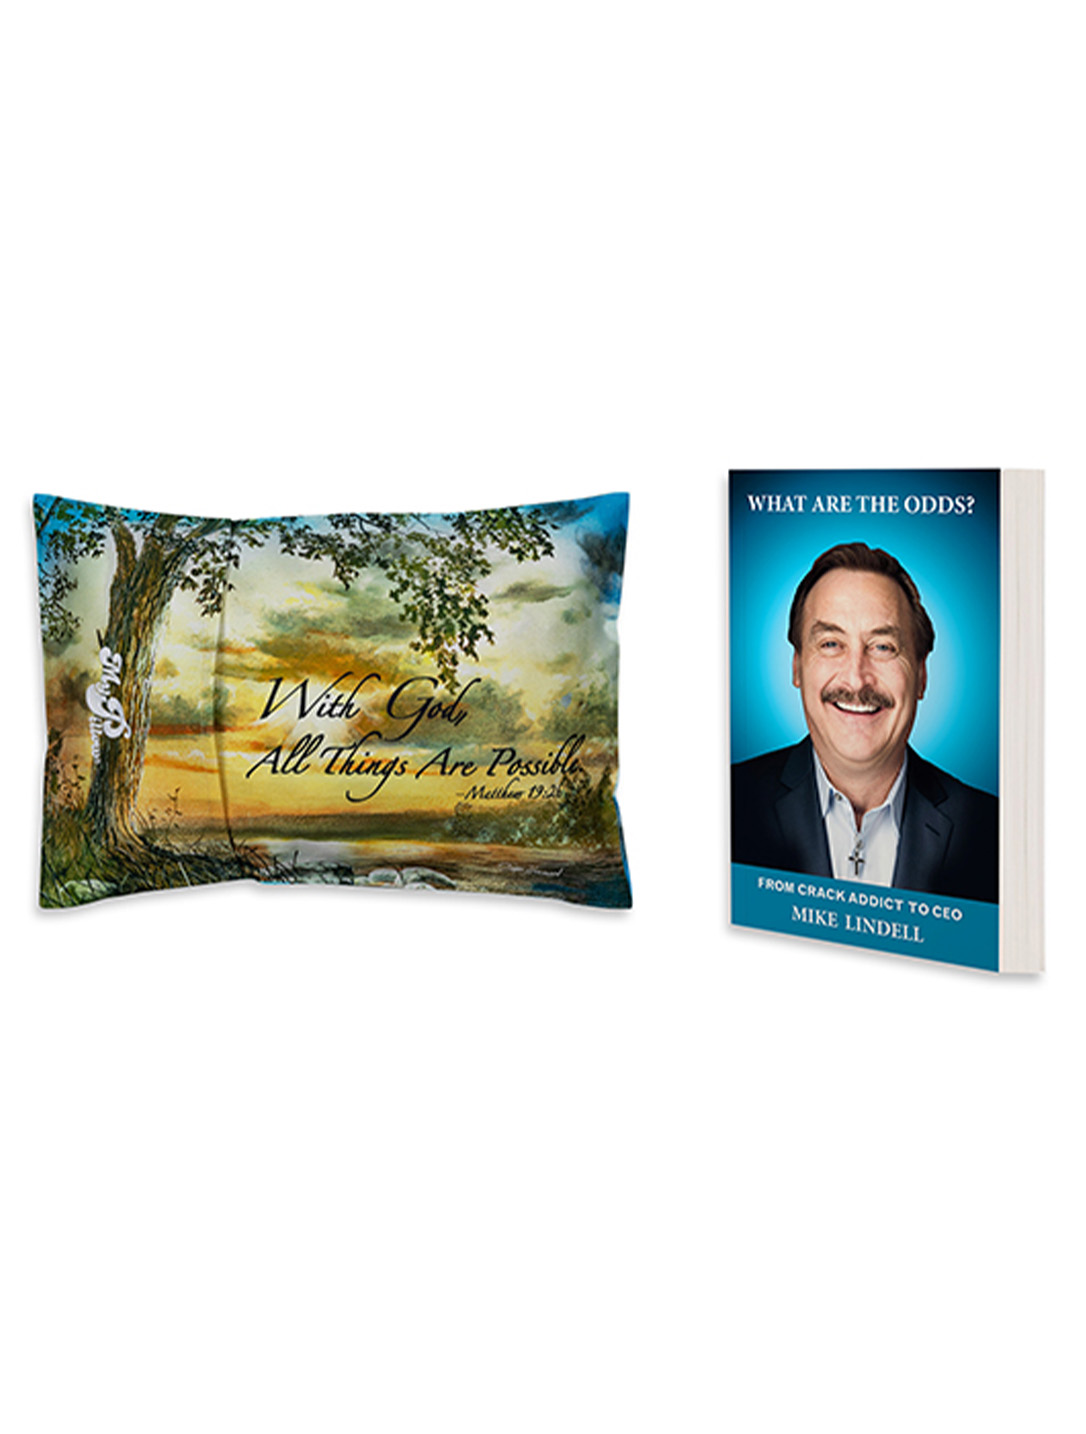 Mike Memoir plus With God All Things Are Possible Roll N GoAnywhere MyPillow